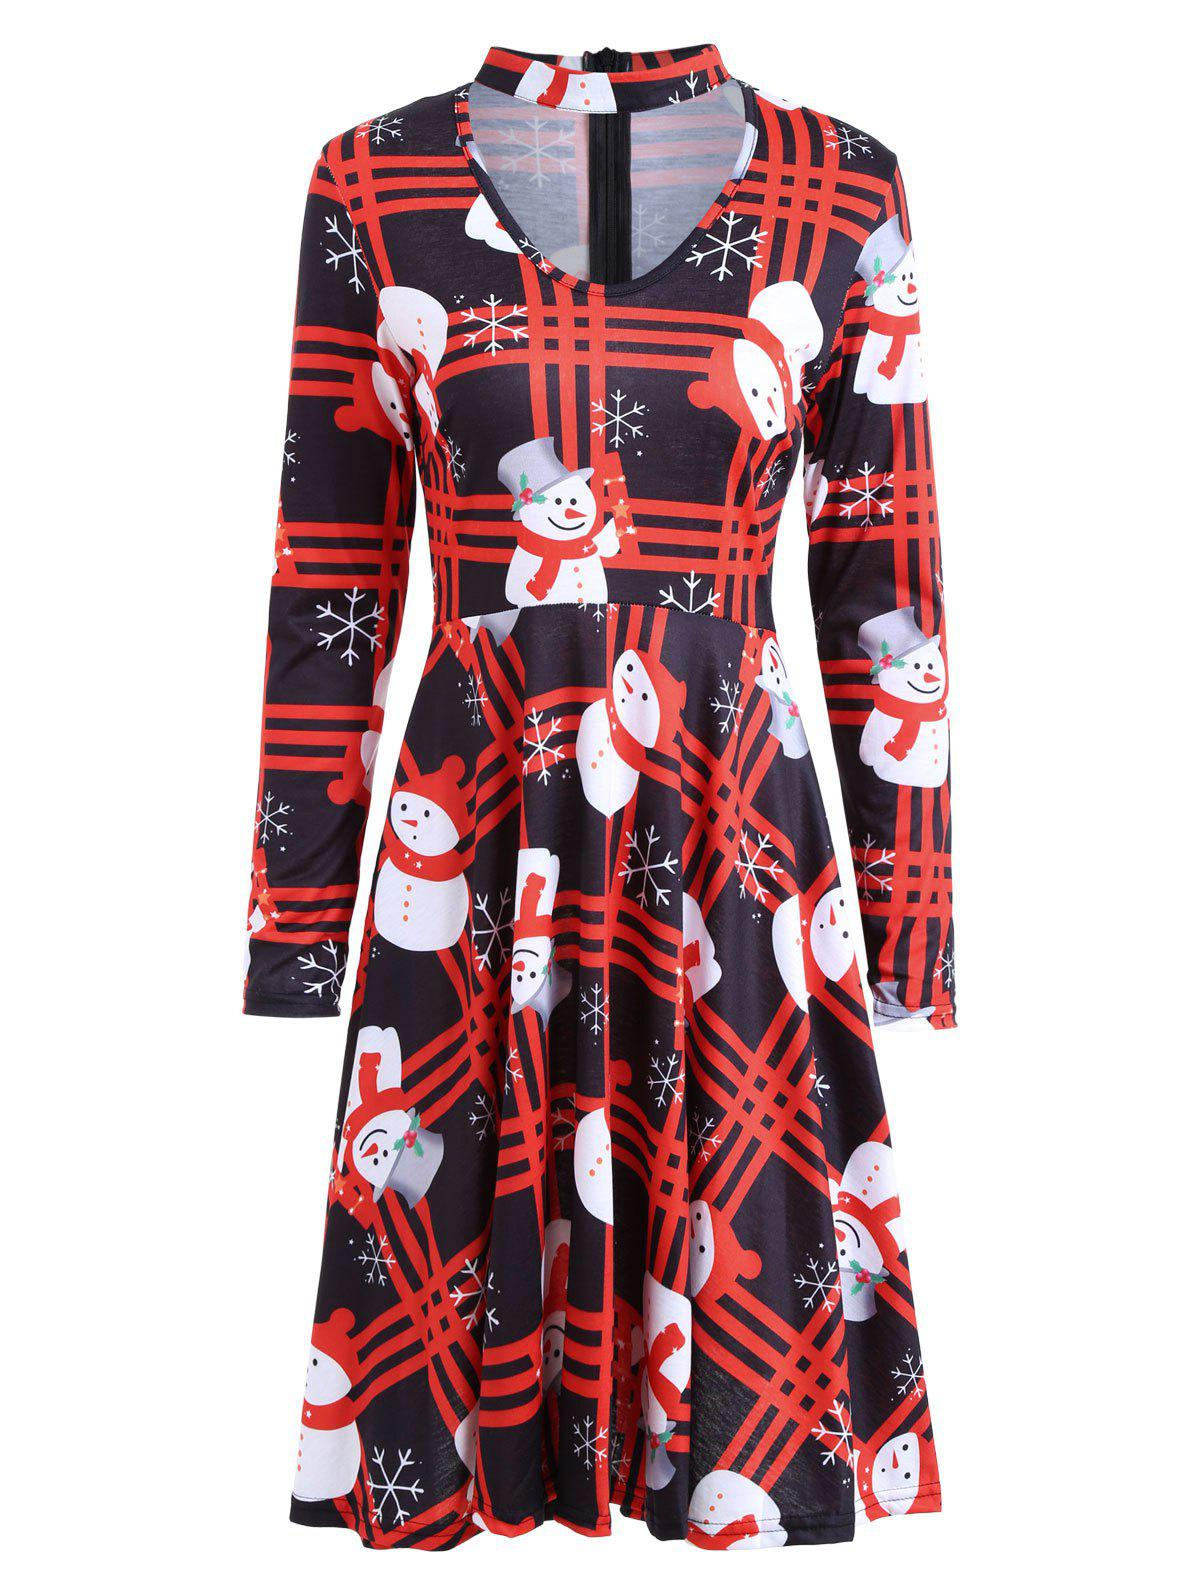 Christmas Snowman Plaid Long Sleeve Choker DressWOMEN<br><br>Size: M; Color: BLACK AND RED; Style: Novelty; Material: Polyester,Spandex; Silhouette: Shift; Dresses Length: Knee-Length; Neckline: Mock Neck; Sleeve Length: Long Sleeves; Pattern Type: Plaid; With Belt: No; Season: Fall,Spring; Weight: 0.3700kg; Package Contents: 1 x Dress;